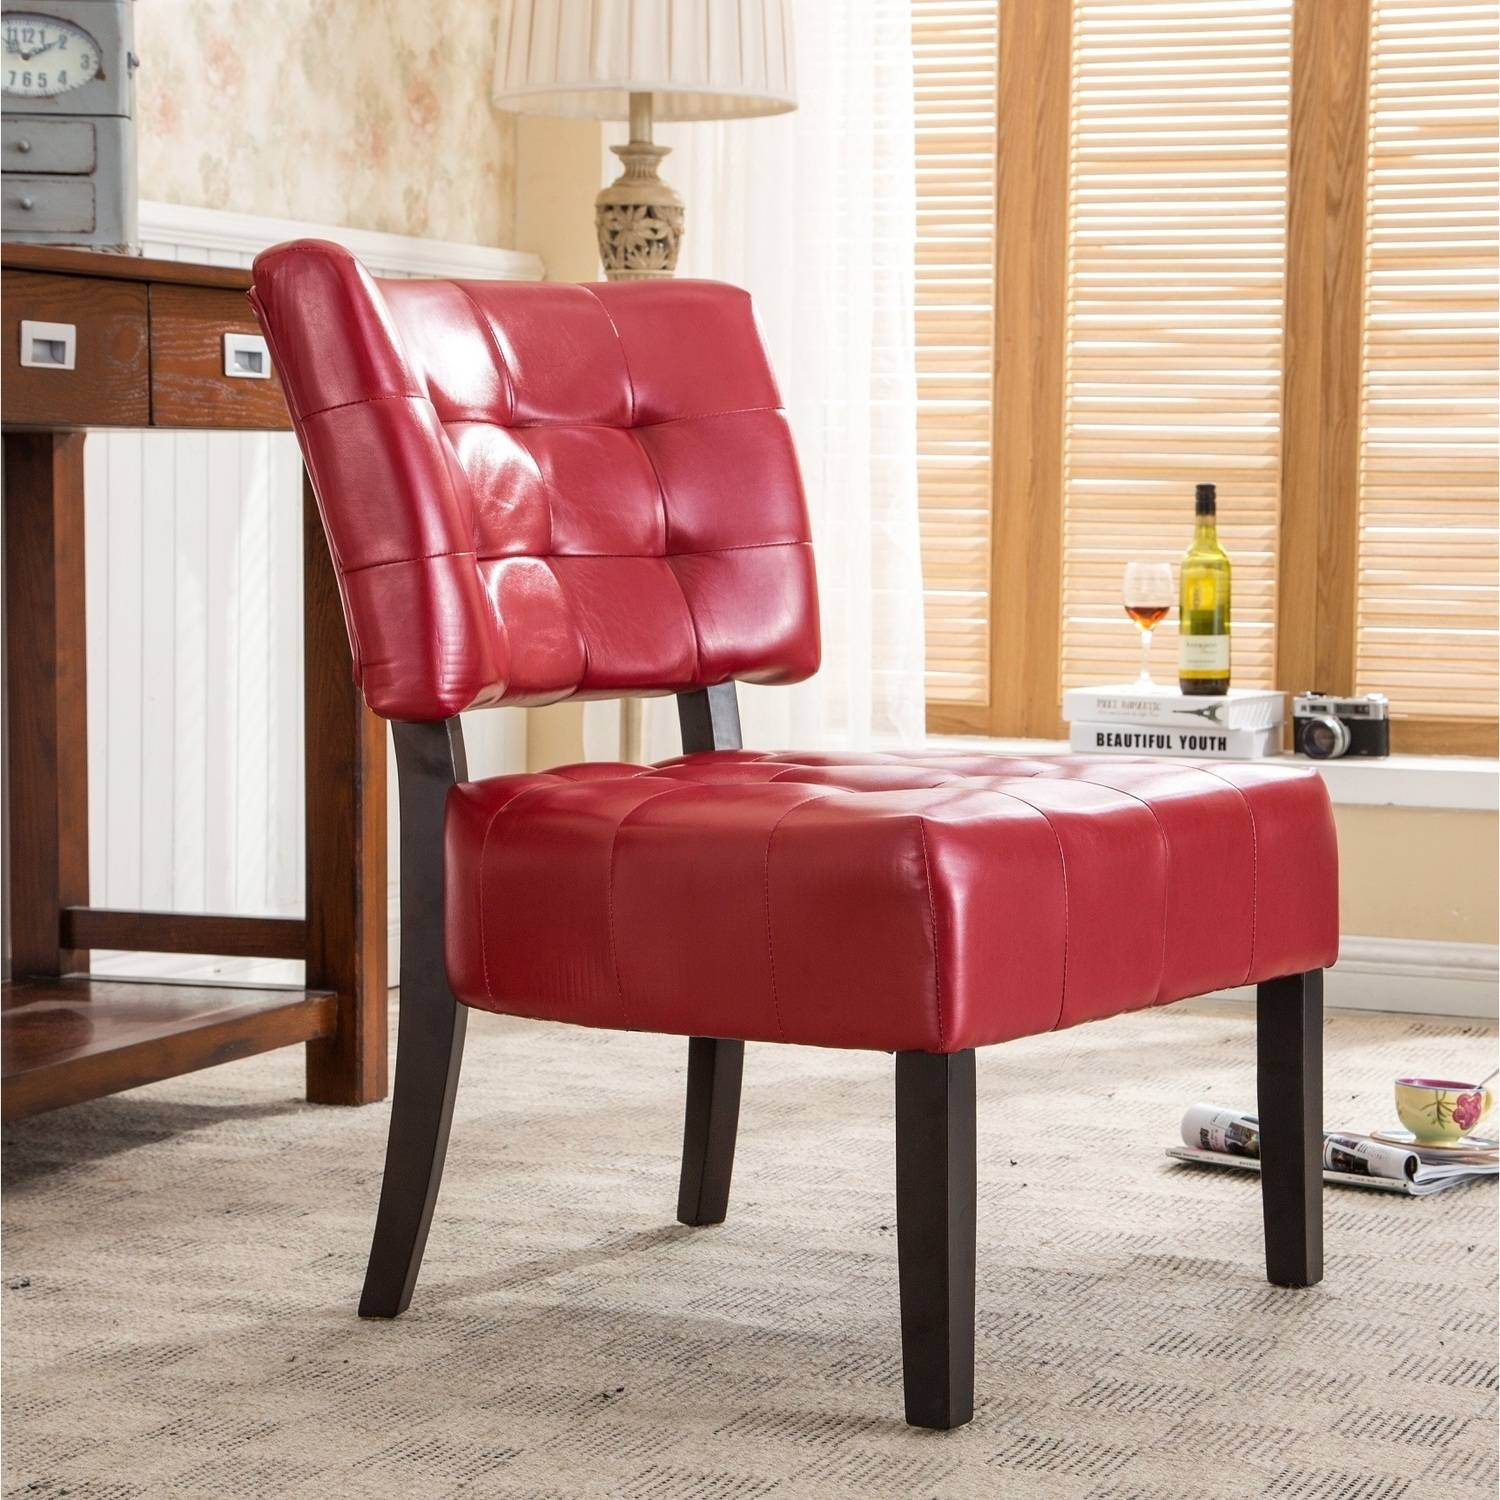 Amazing Tufted Accent Chair Decoration